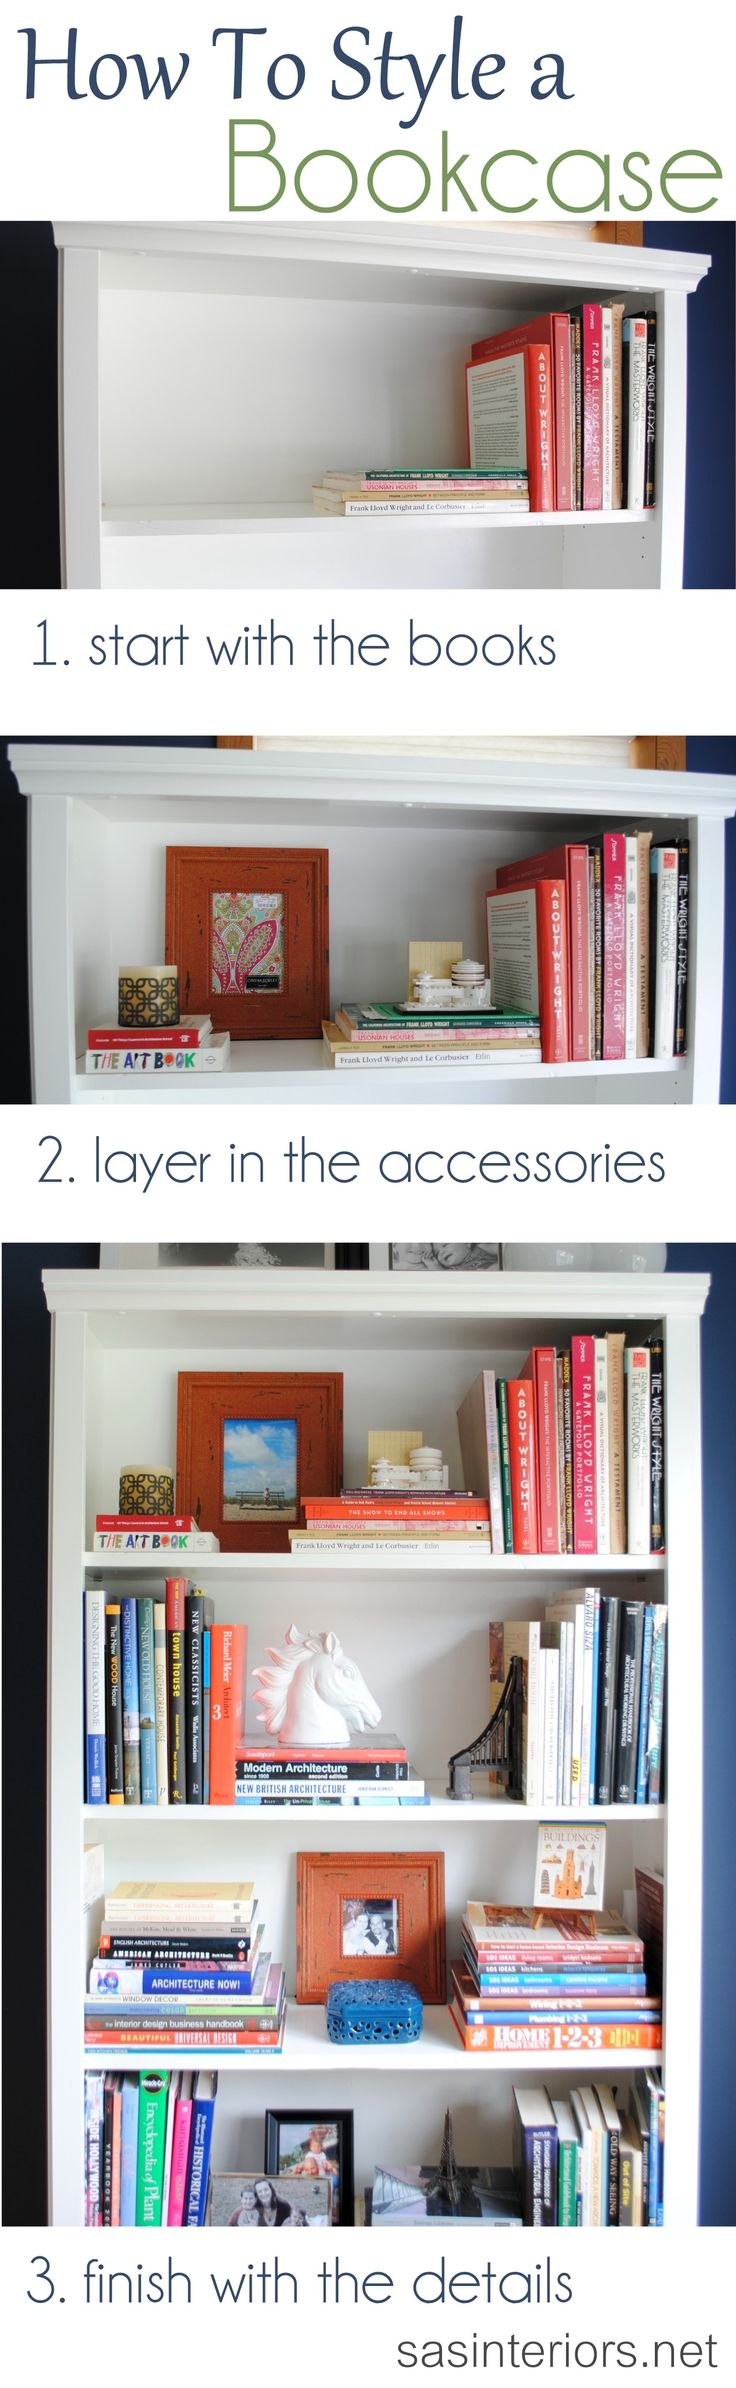 Tips + Steps for styling a bookcase. Inspirational ideas on how and where to begin styling a bookcase or shelf in your home!